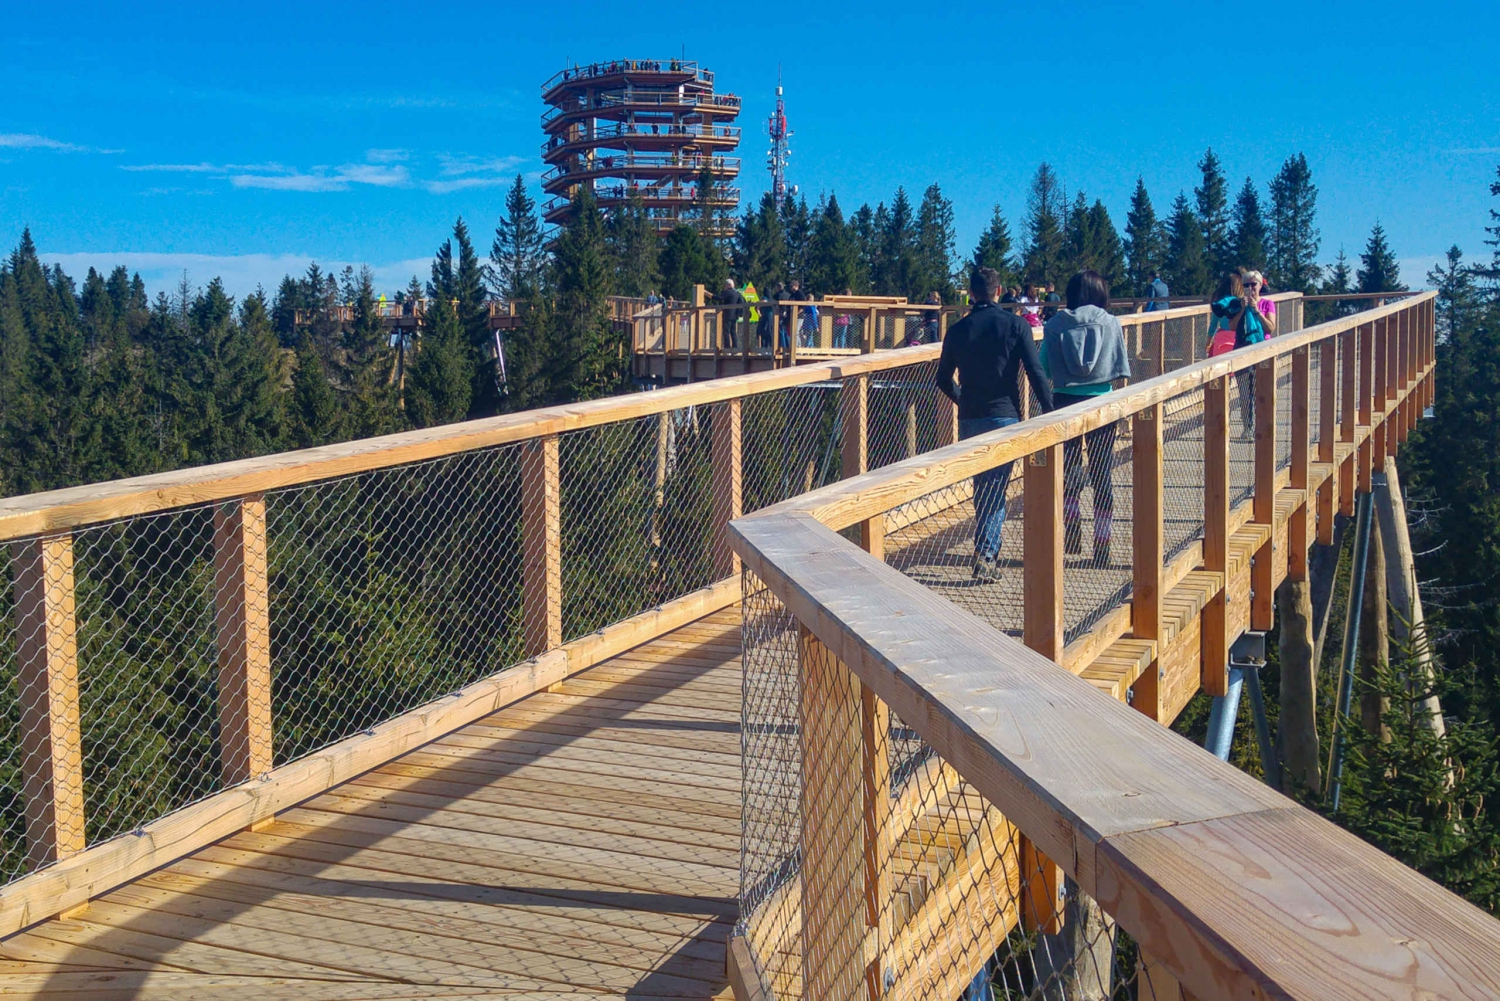 From Krakow: Slovakia Treetop Walk, Zakopane & Thermal Spa